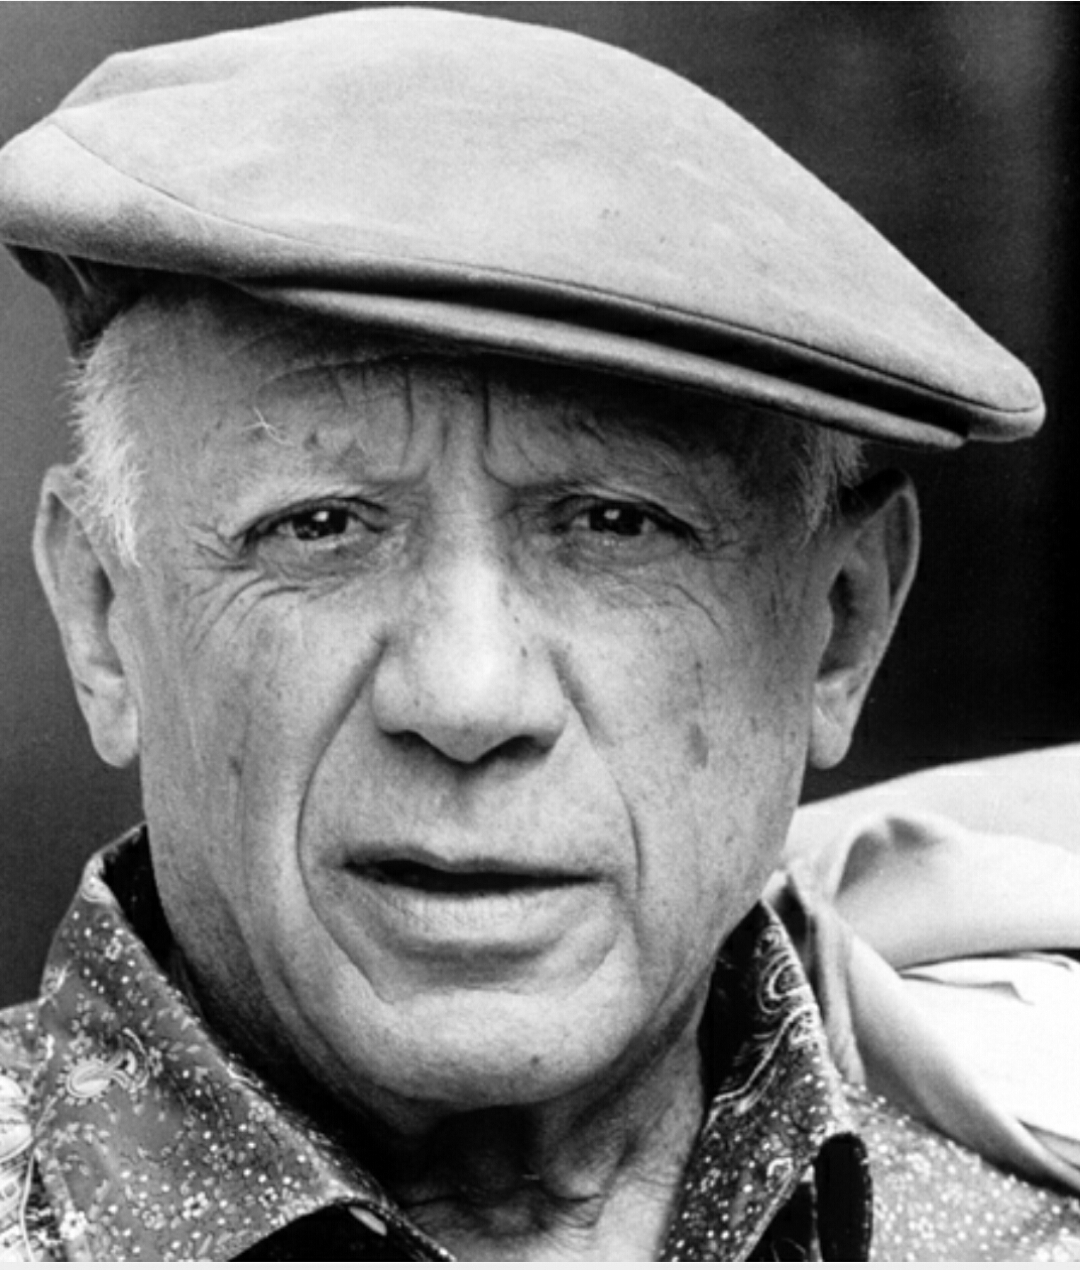 Pablo Picasso | Sartle - See Art Differently